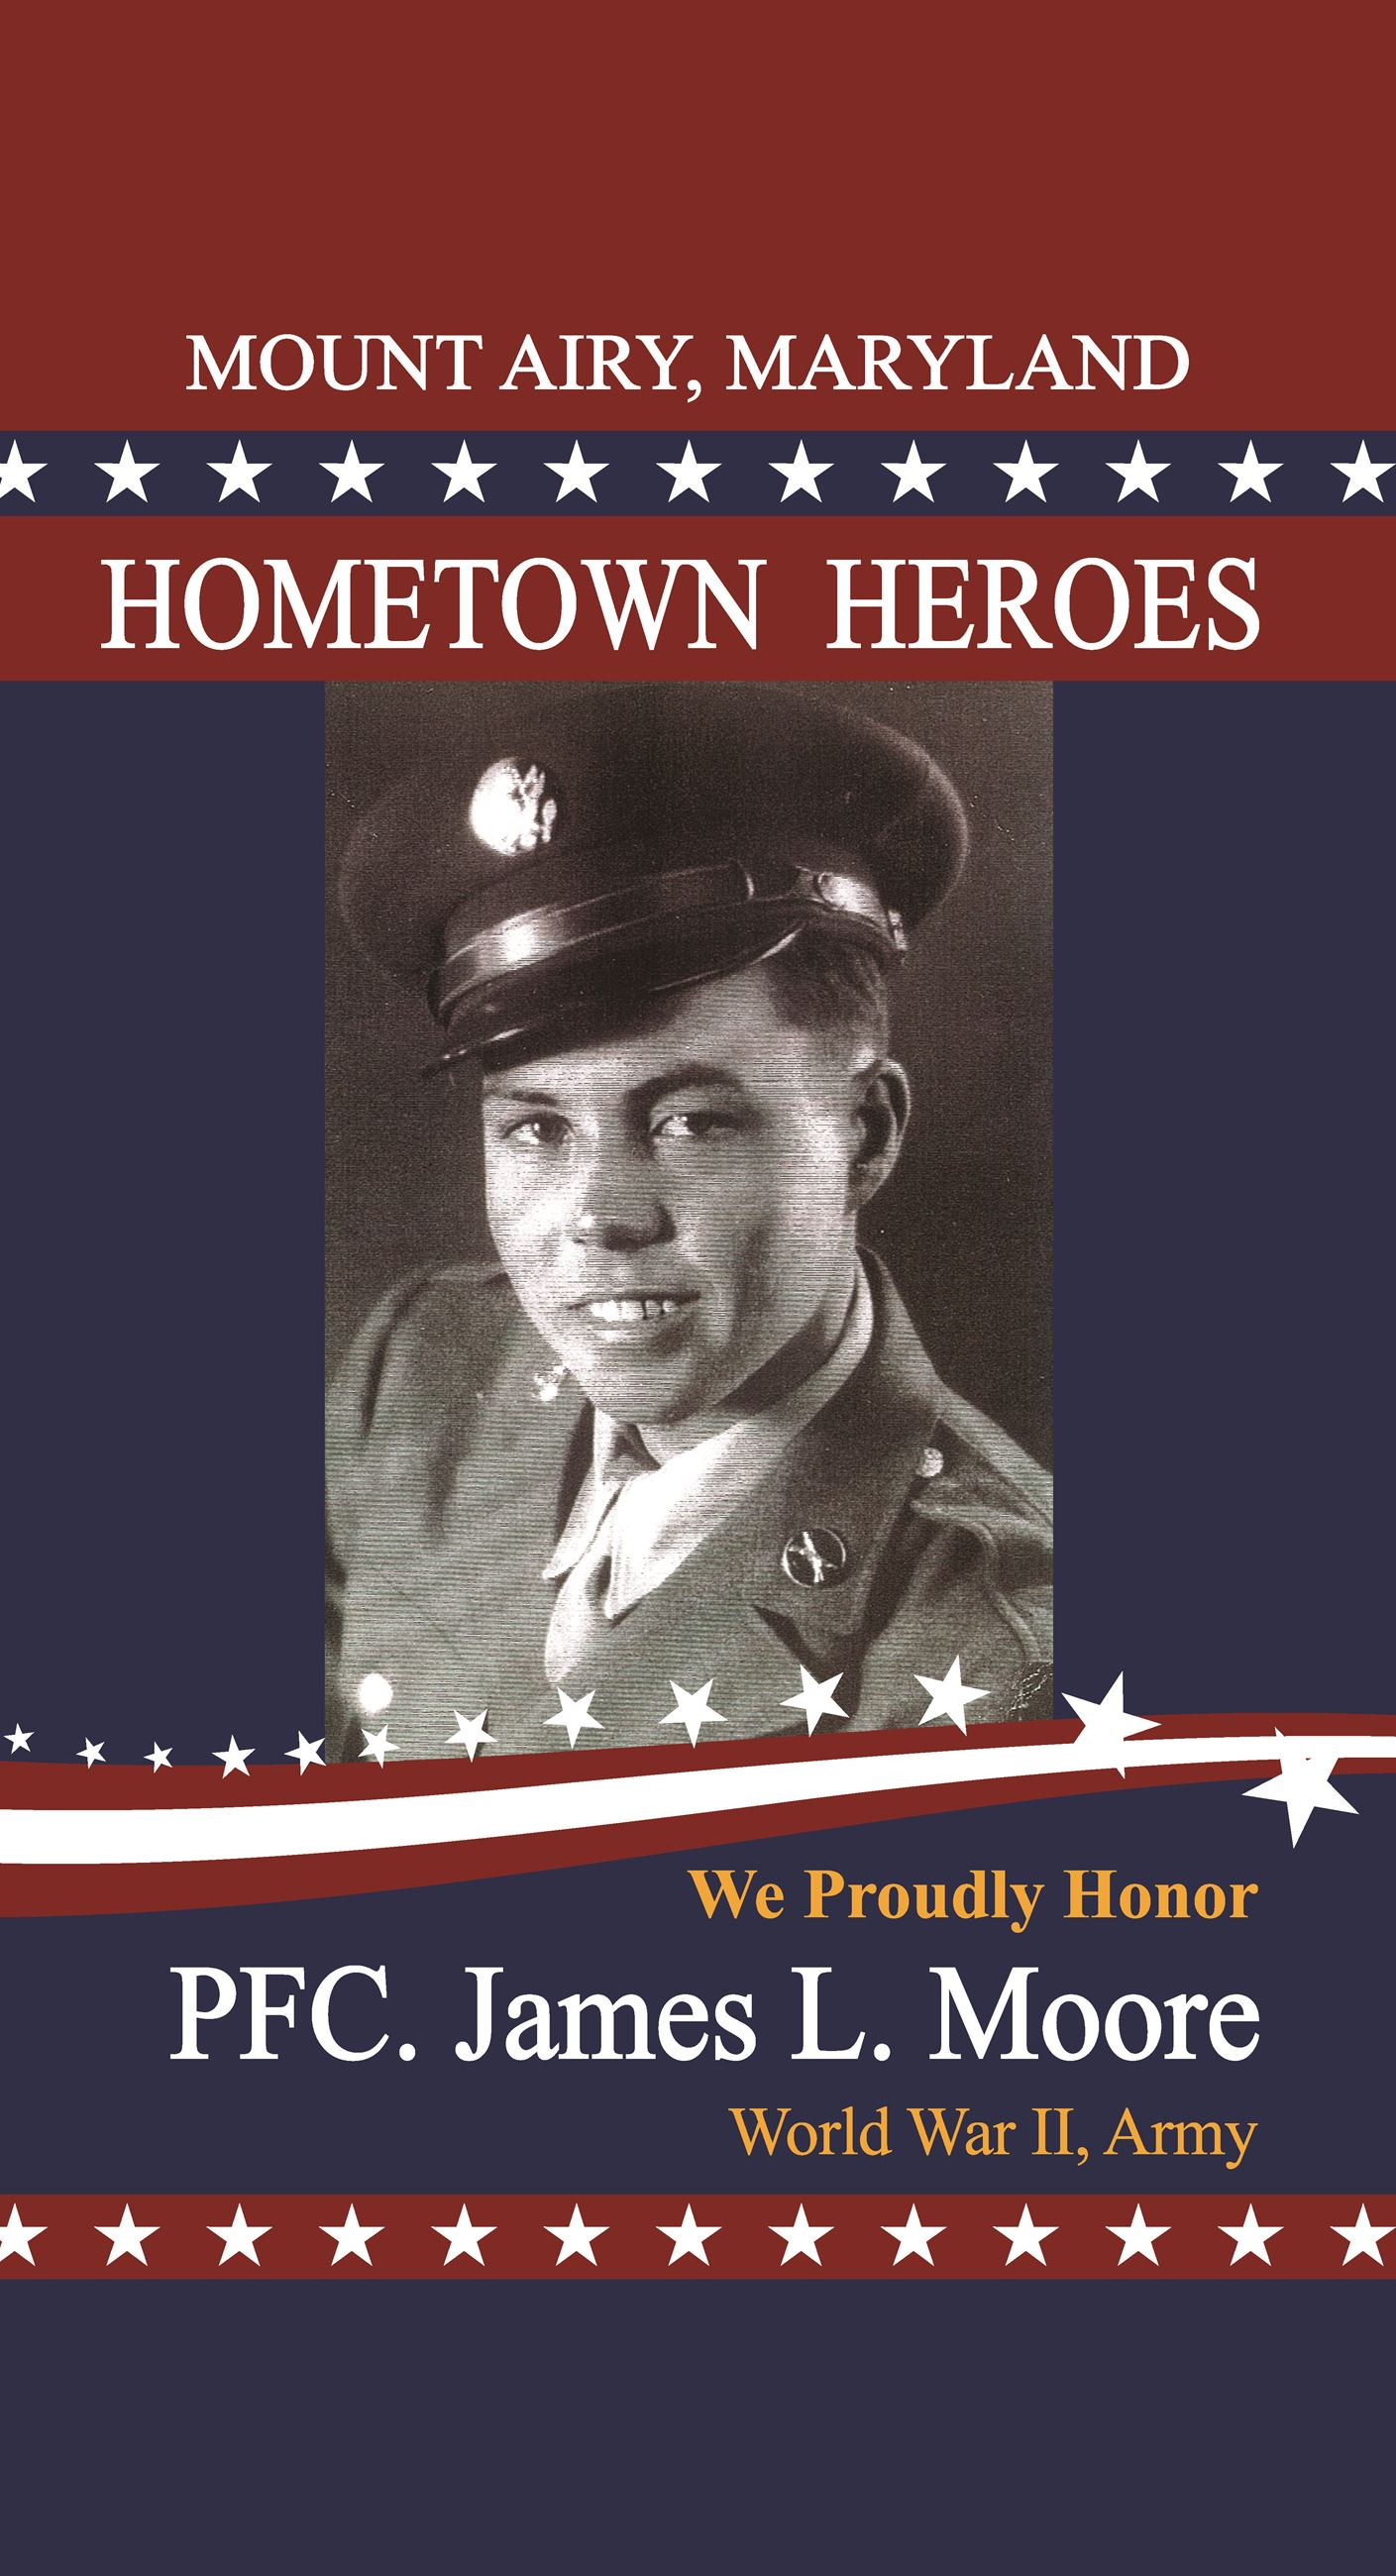 JamesLMoore_MtAiryHeroes-Flag-24x44-Proof002